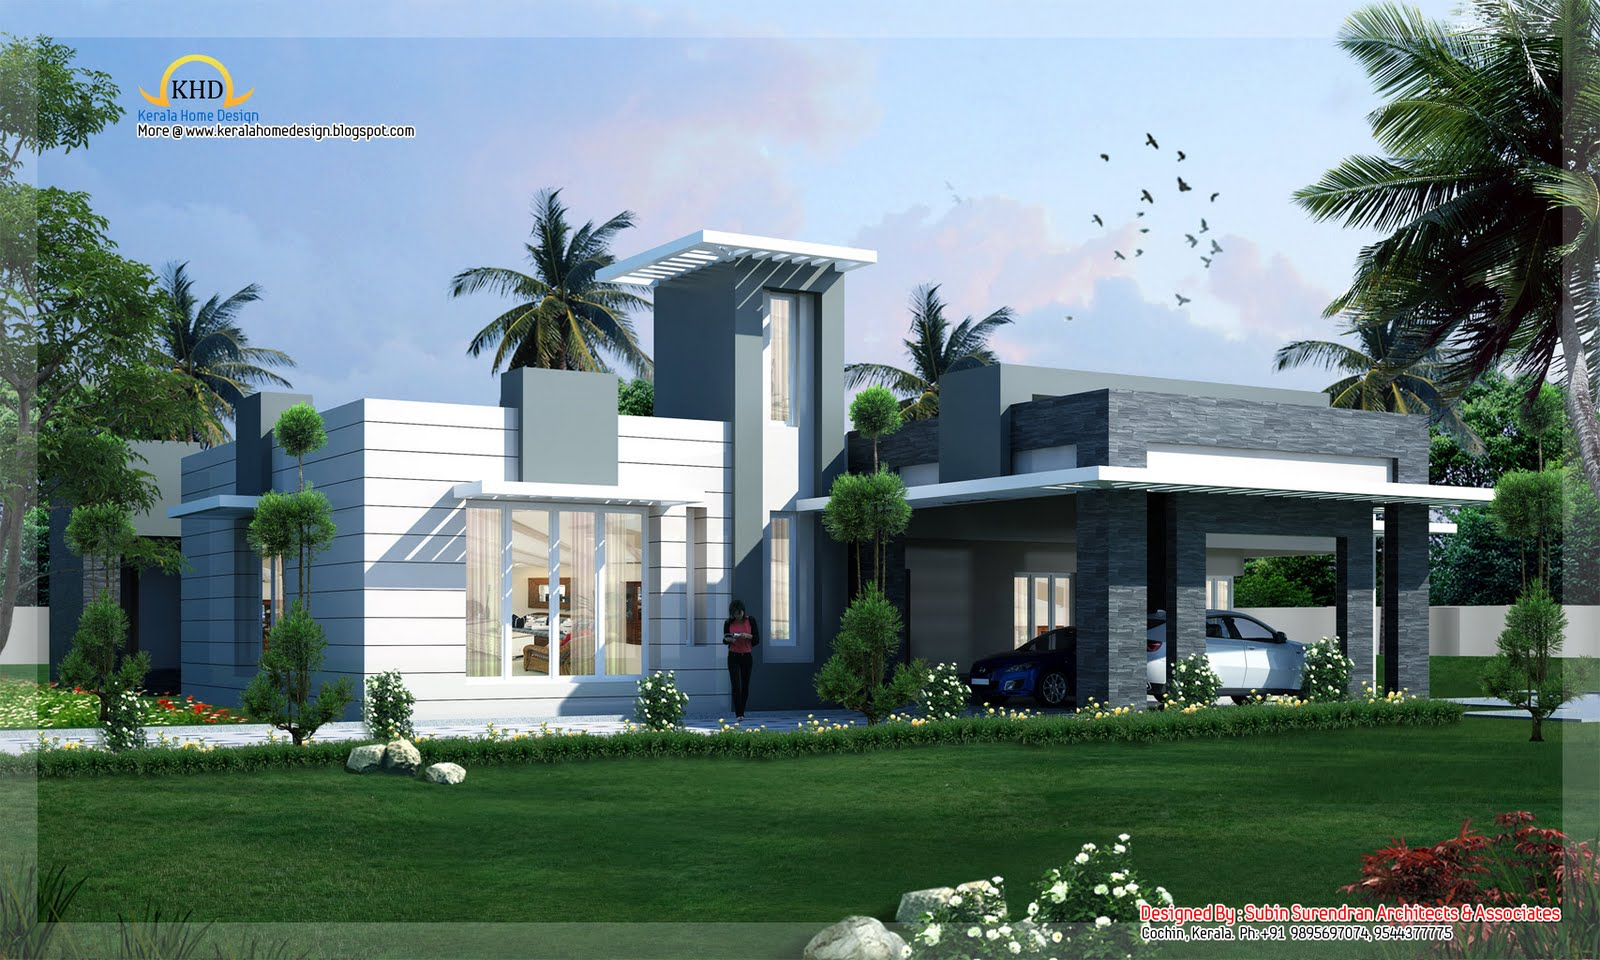 Stunning Home Modern House Design 1600 x 960 · 289 kB · jpeg